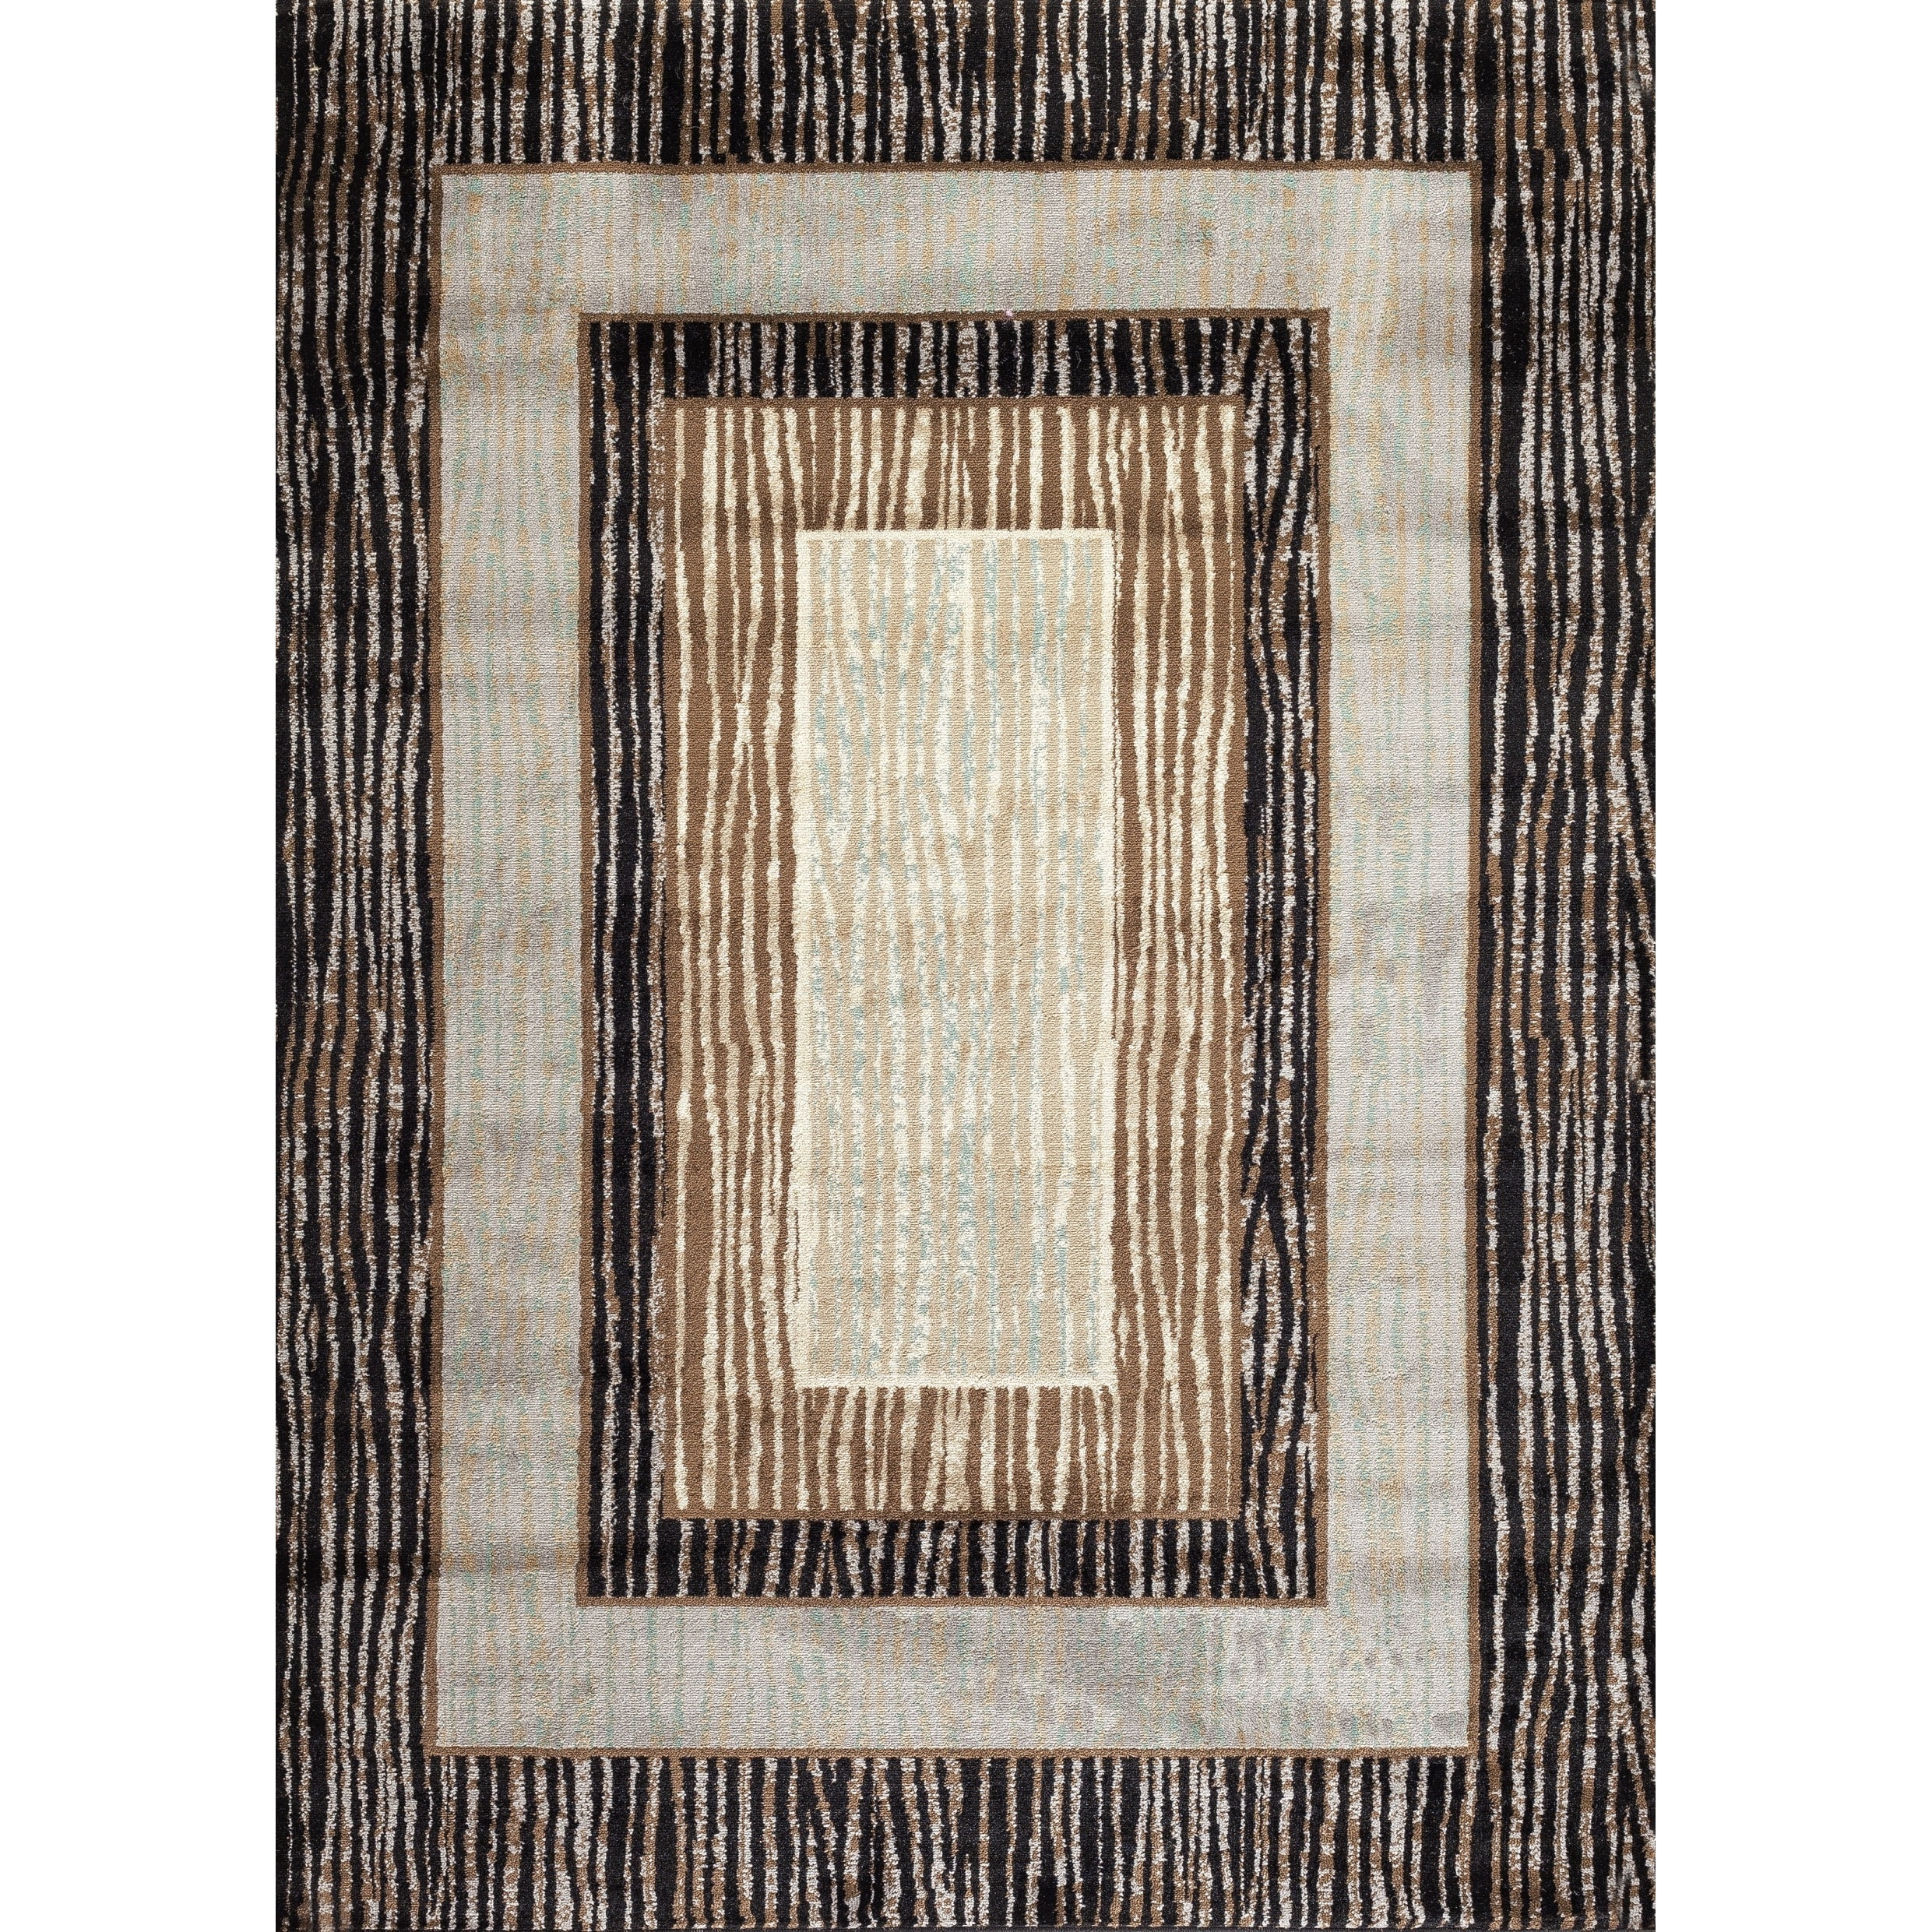 "OSTI Fireside Brown, Beige, and Caramel Bordered Area Rug - 3'4"" x 5'"